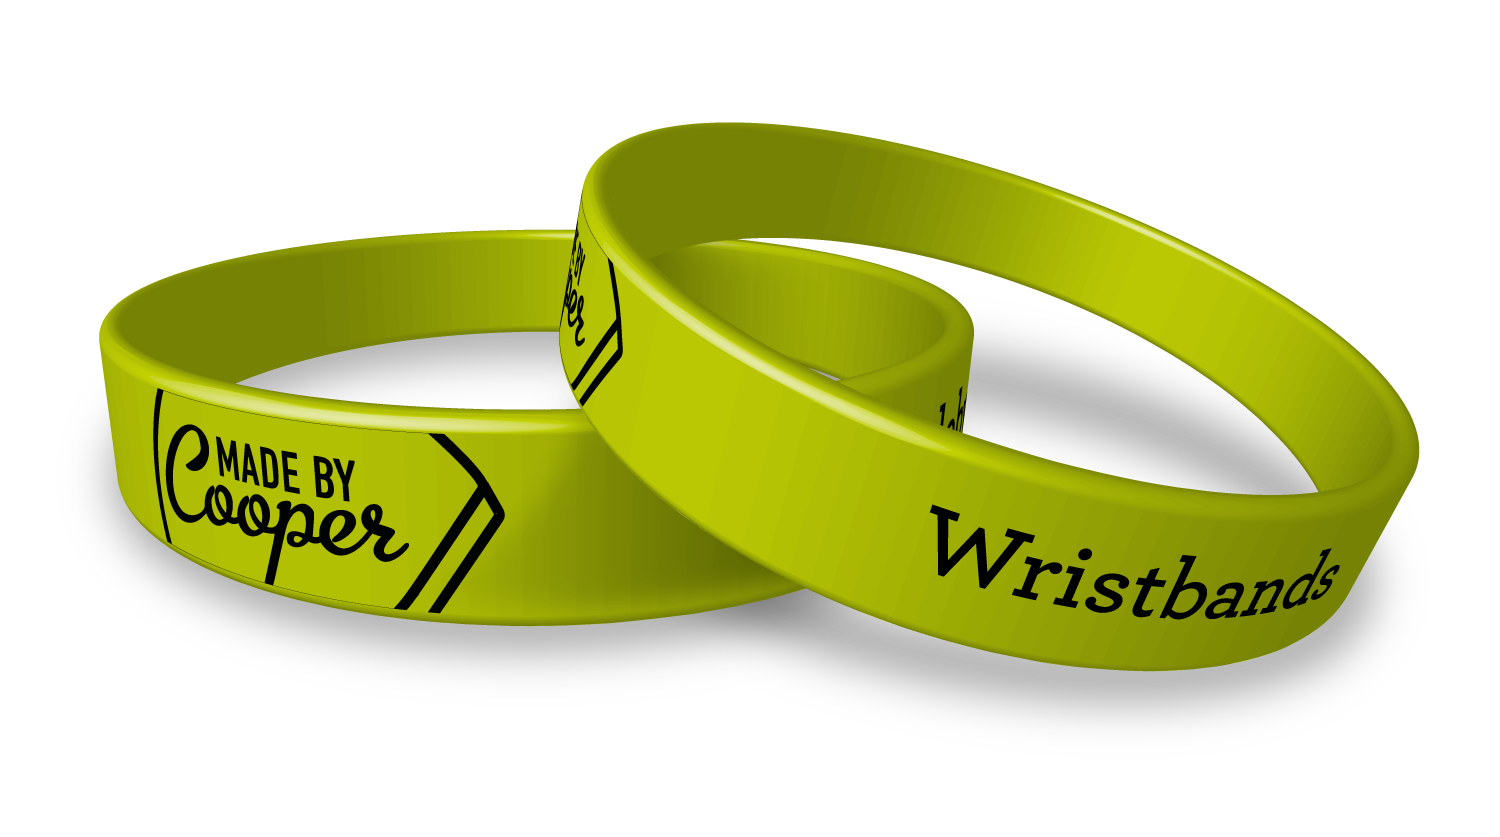 Wrist band png. Printed charity and sport